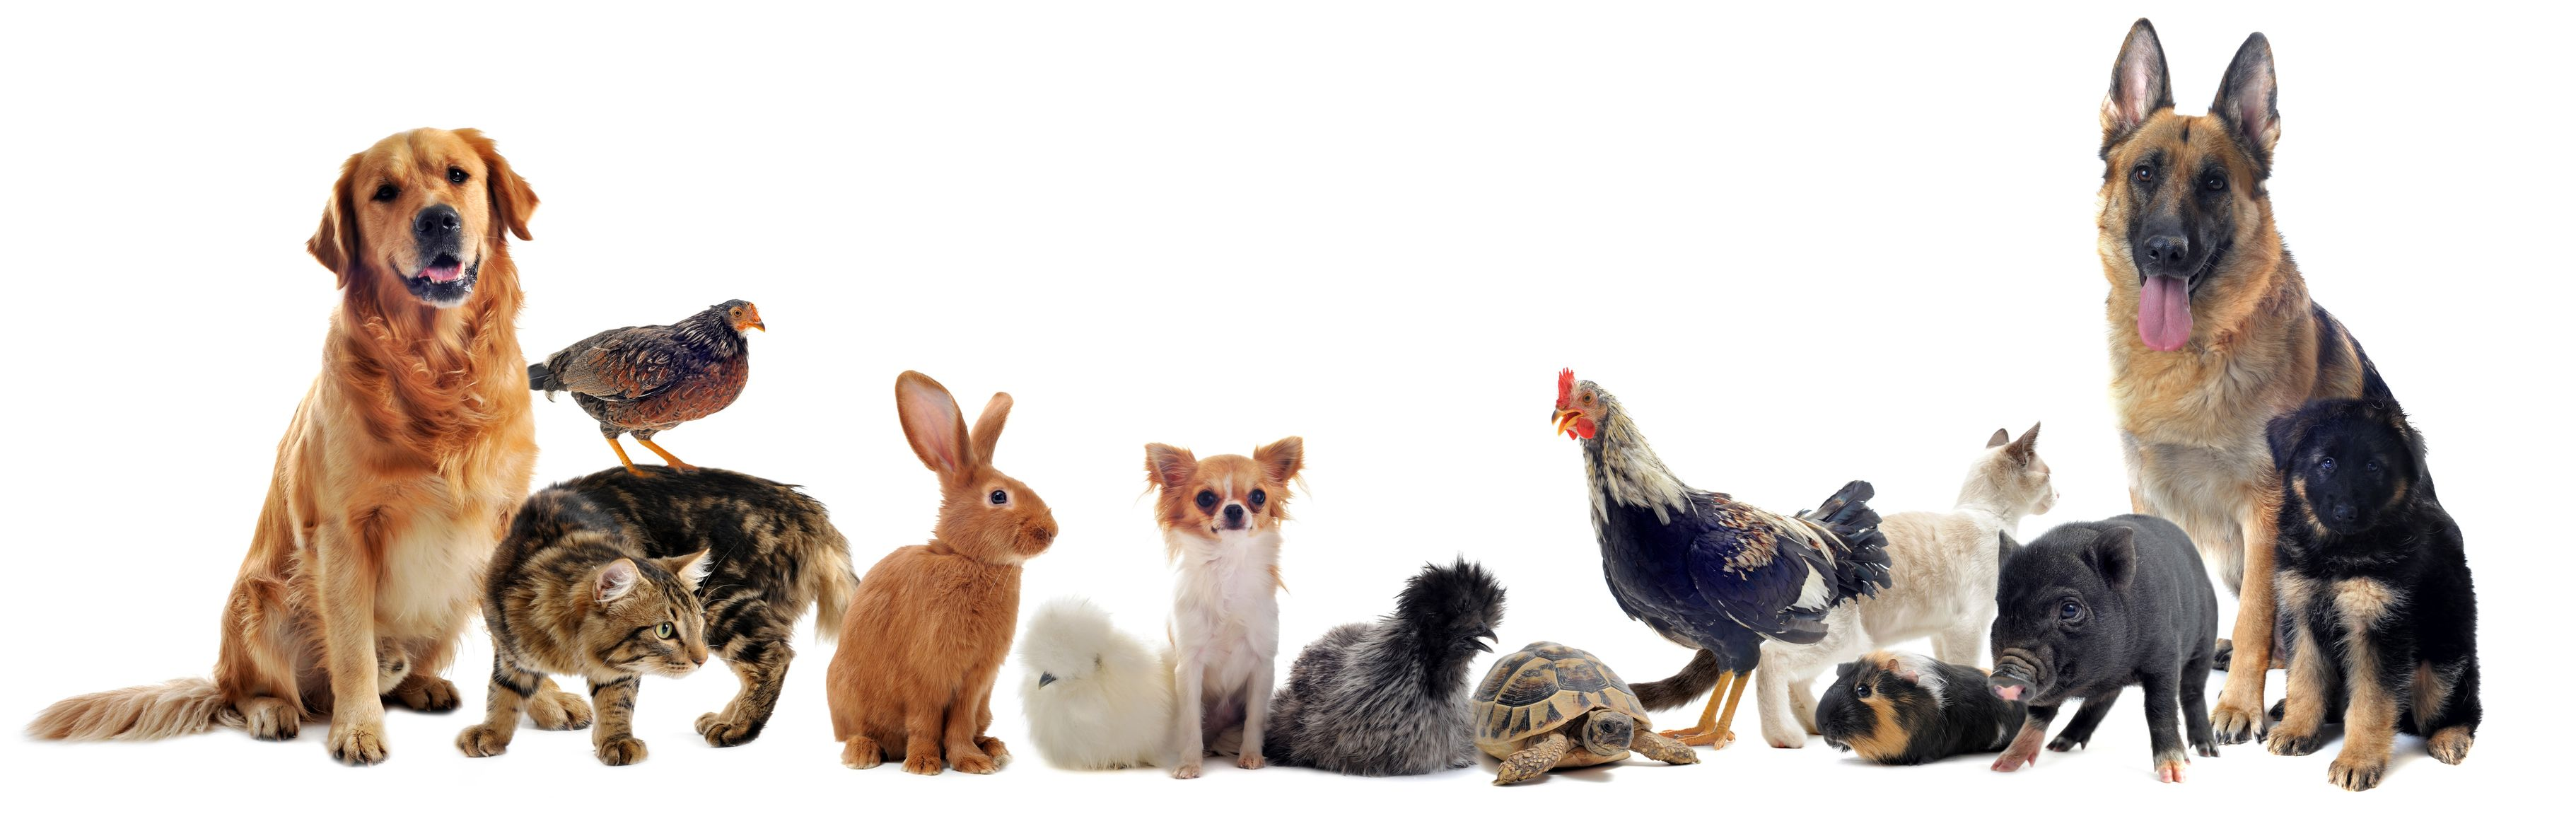 Animal Health Care - Pets Are Part of the Family Too!